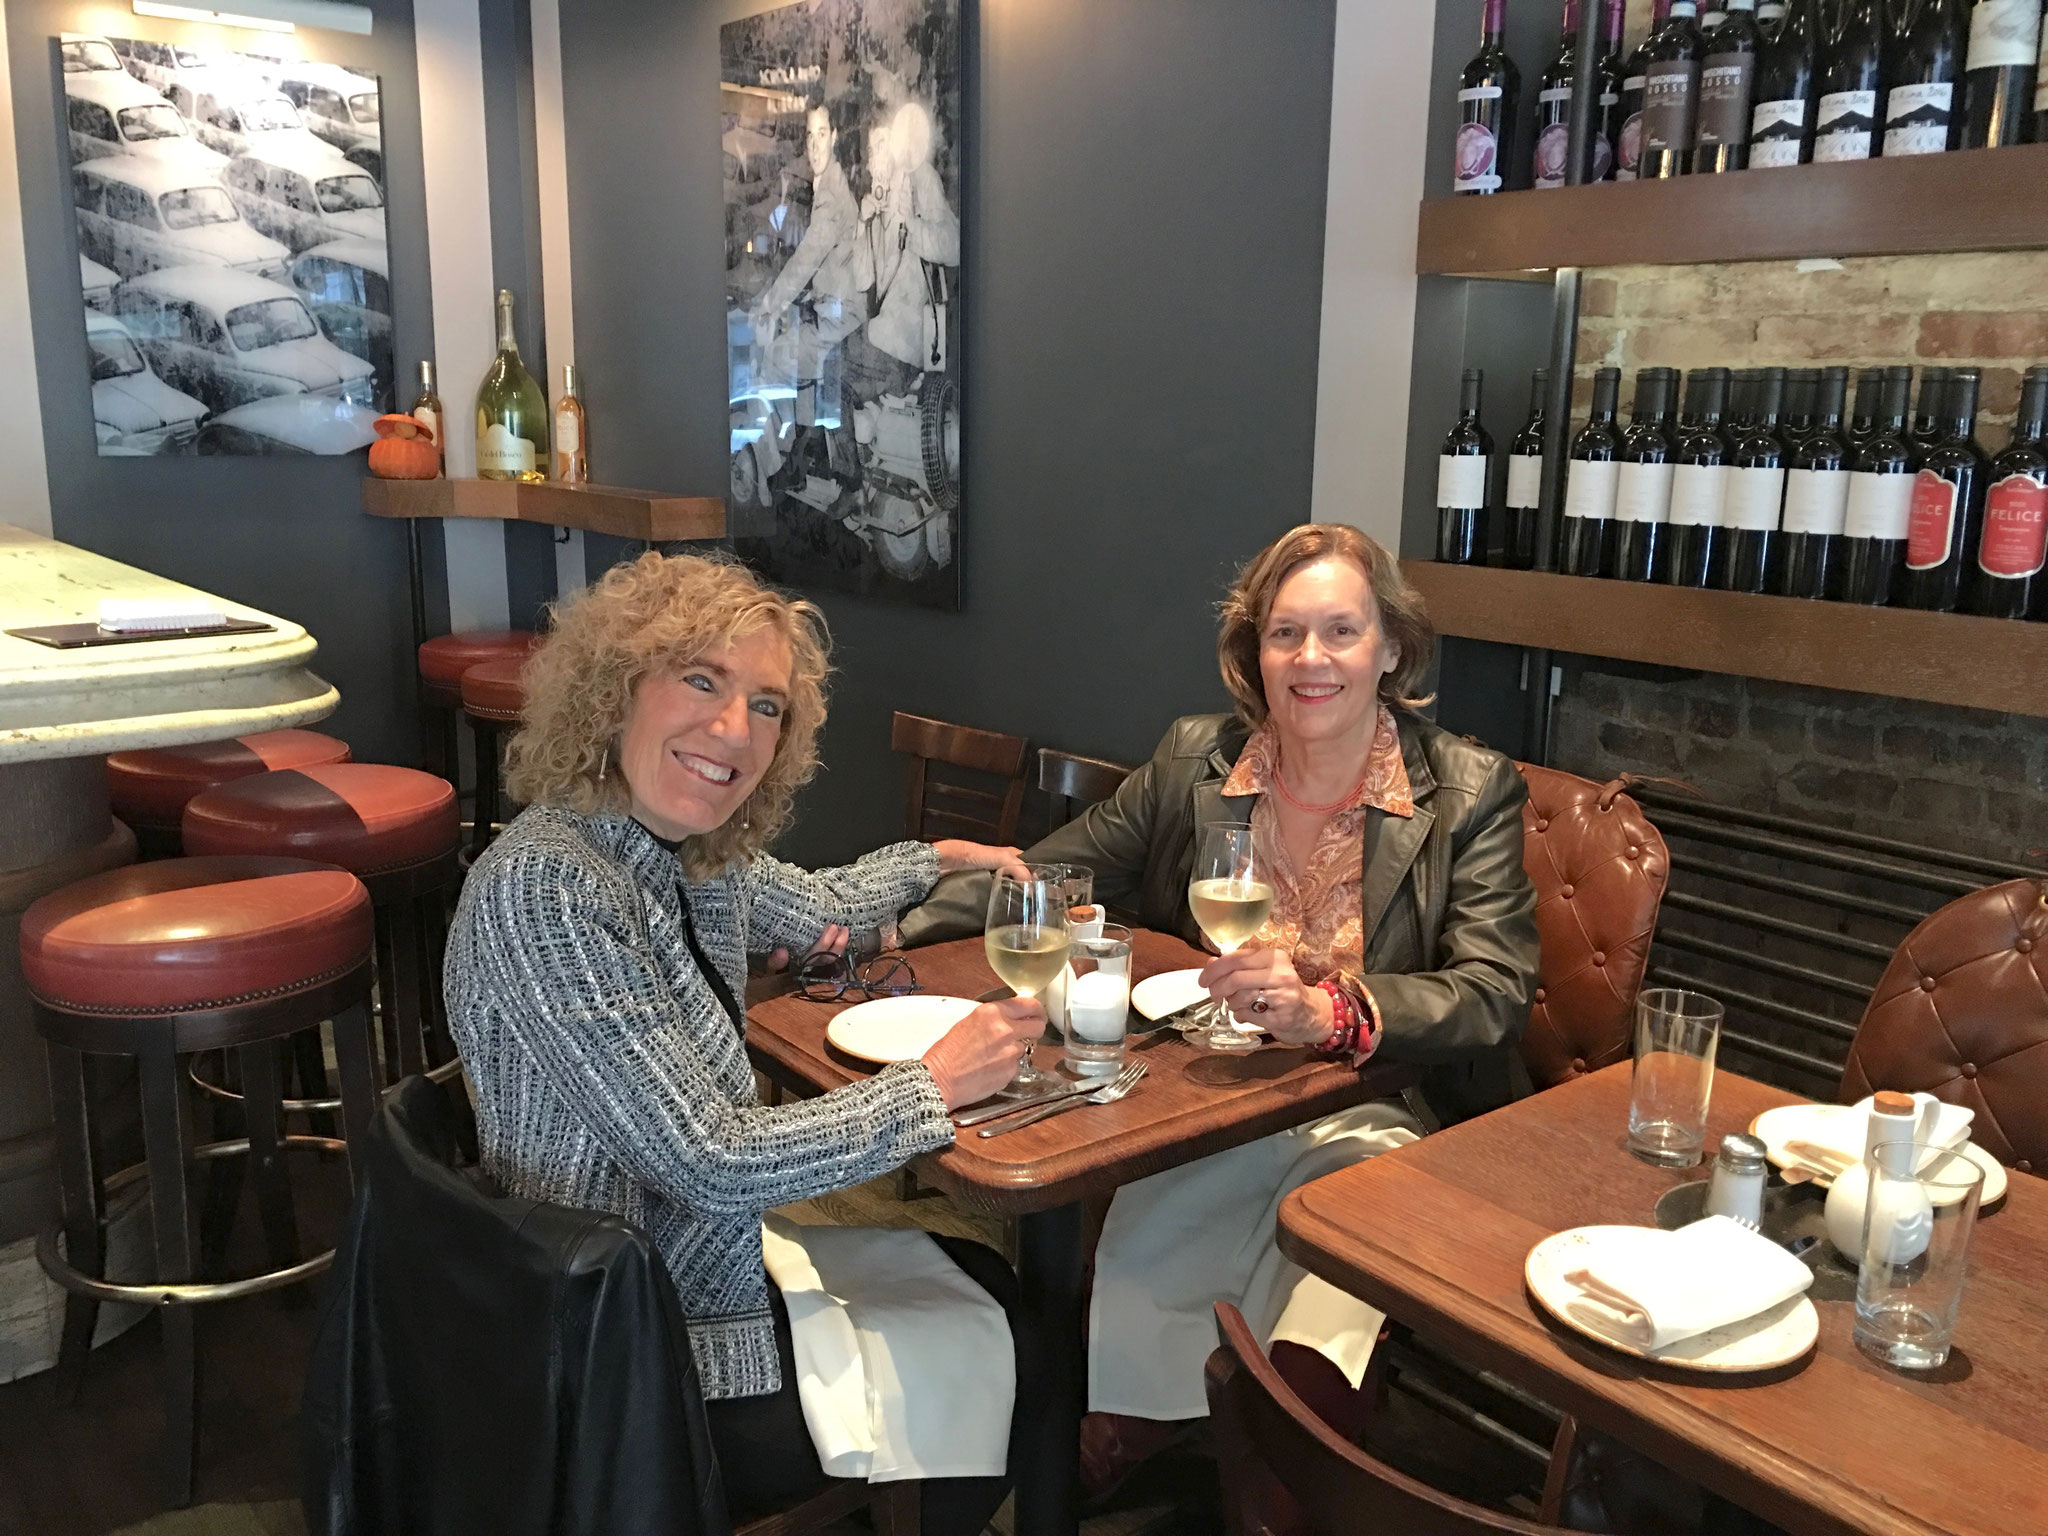 Drs. Elaine Fuchs & Lorraine Gudas, 10-2019 Lunch....Girls Rule II!